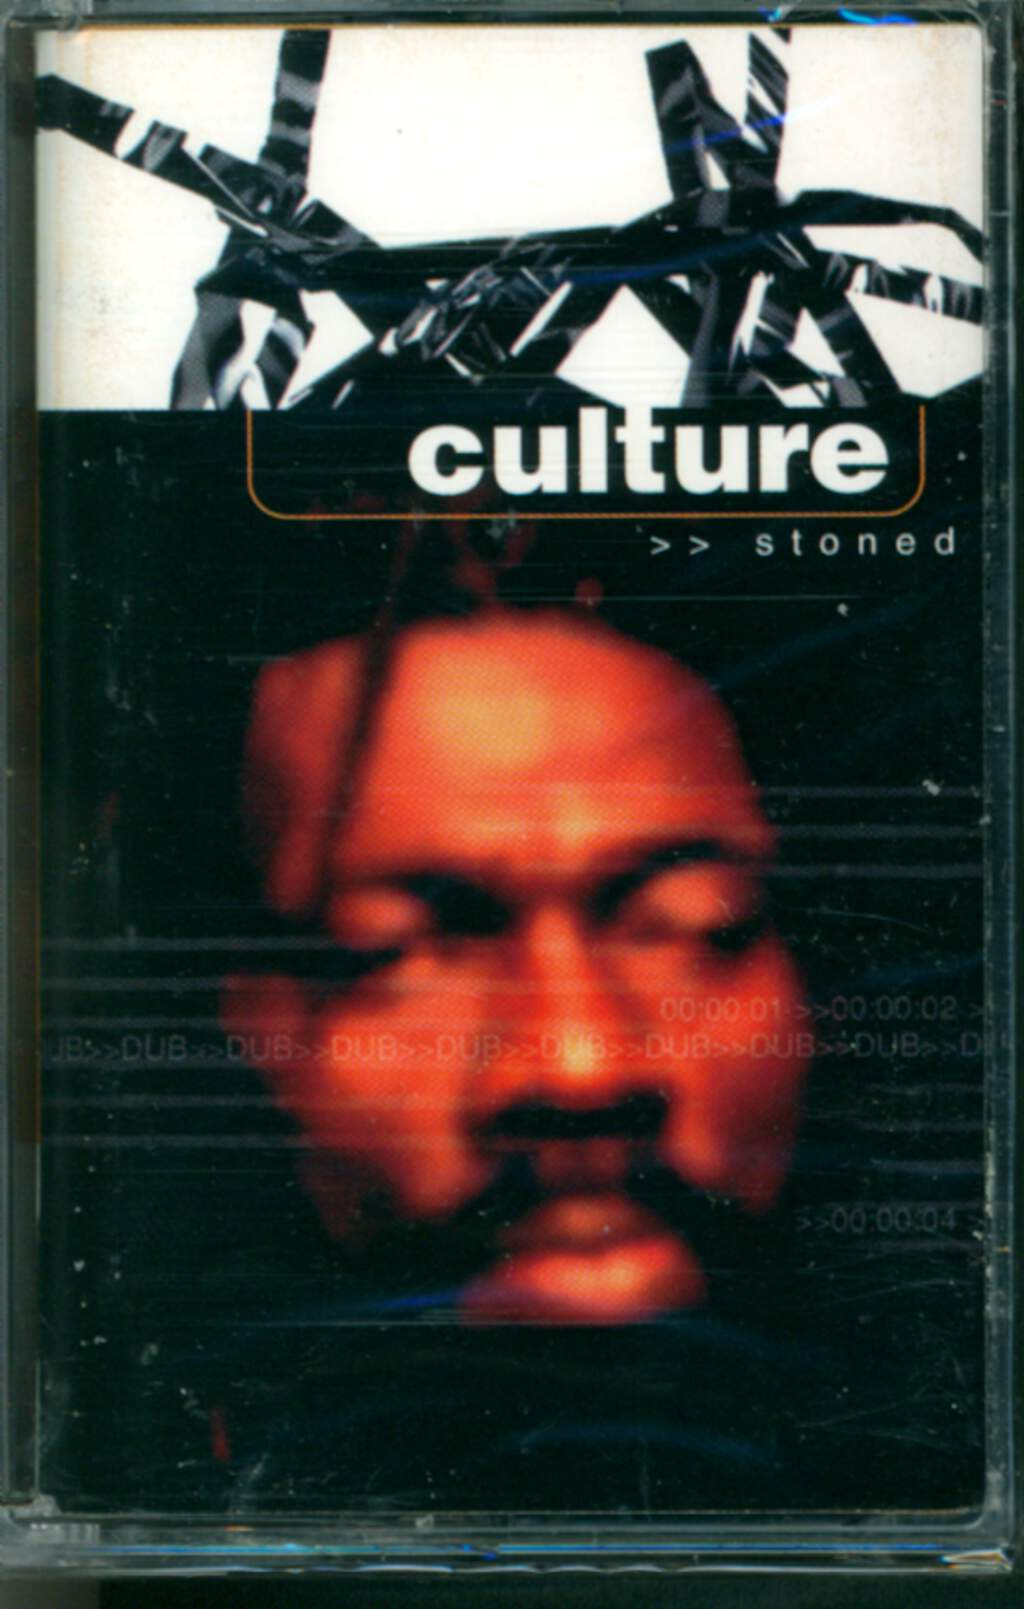 Culture: Stoned, Tape